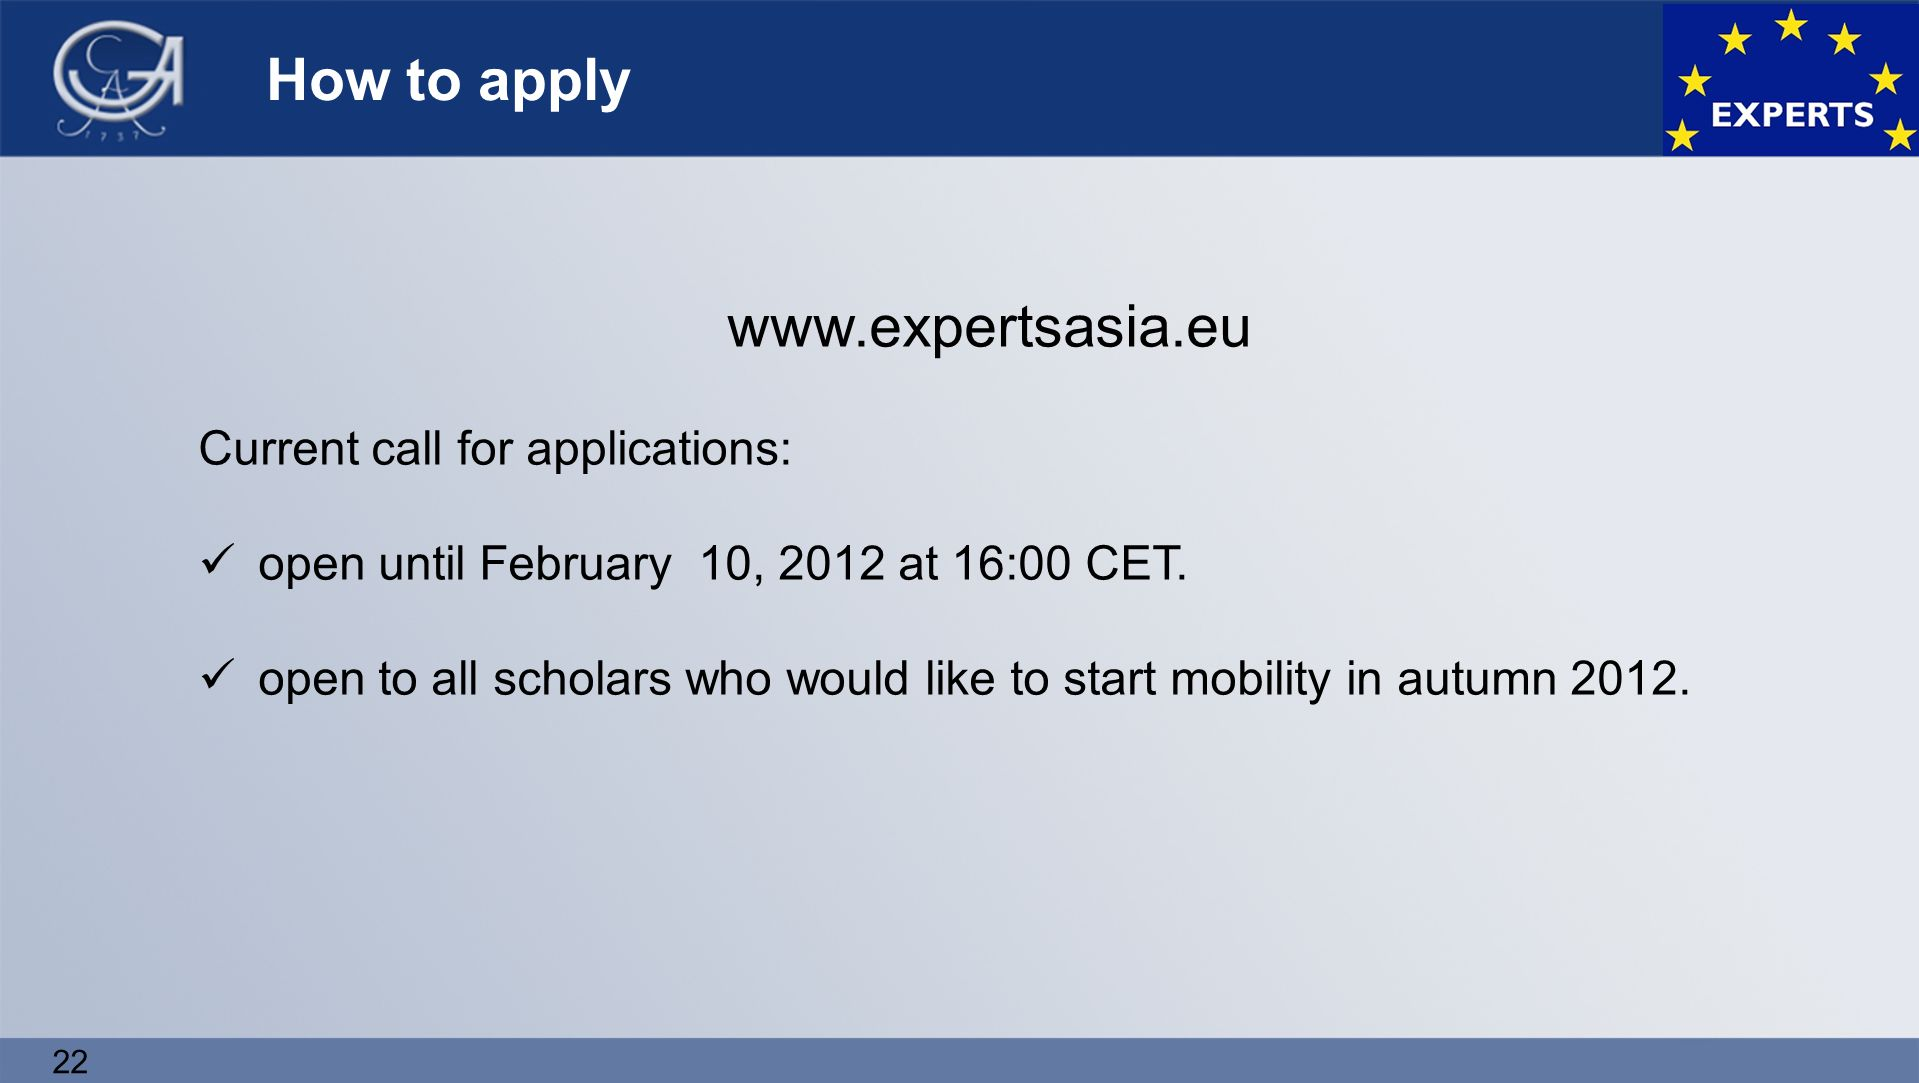 22 How to apply www.expertsasia.eu Current call for applications: open until February 10, 2012 at 16:00 CET.